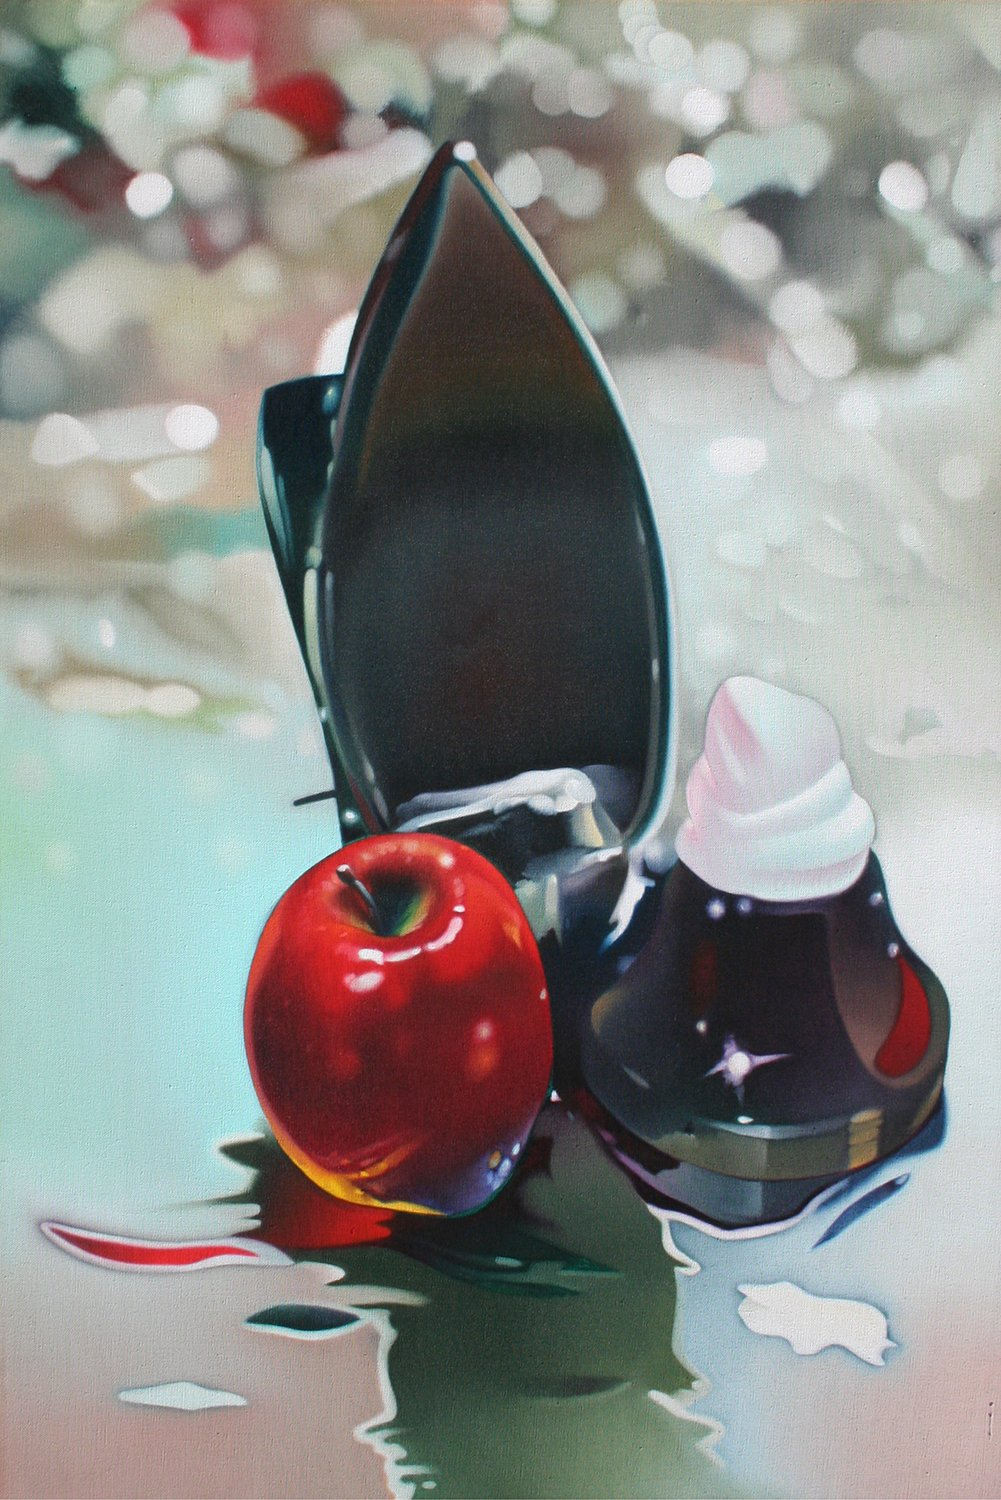 Gary Pruner, Apple Foam, 1973